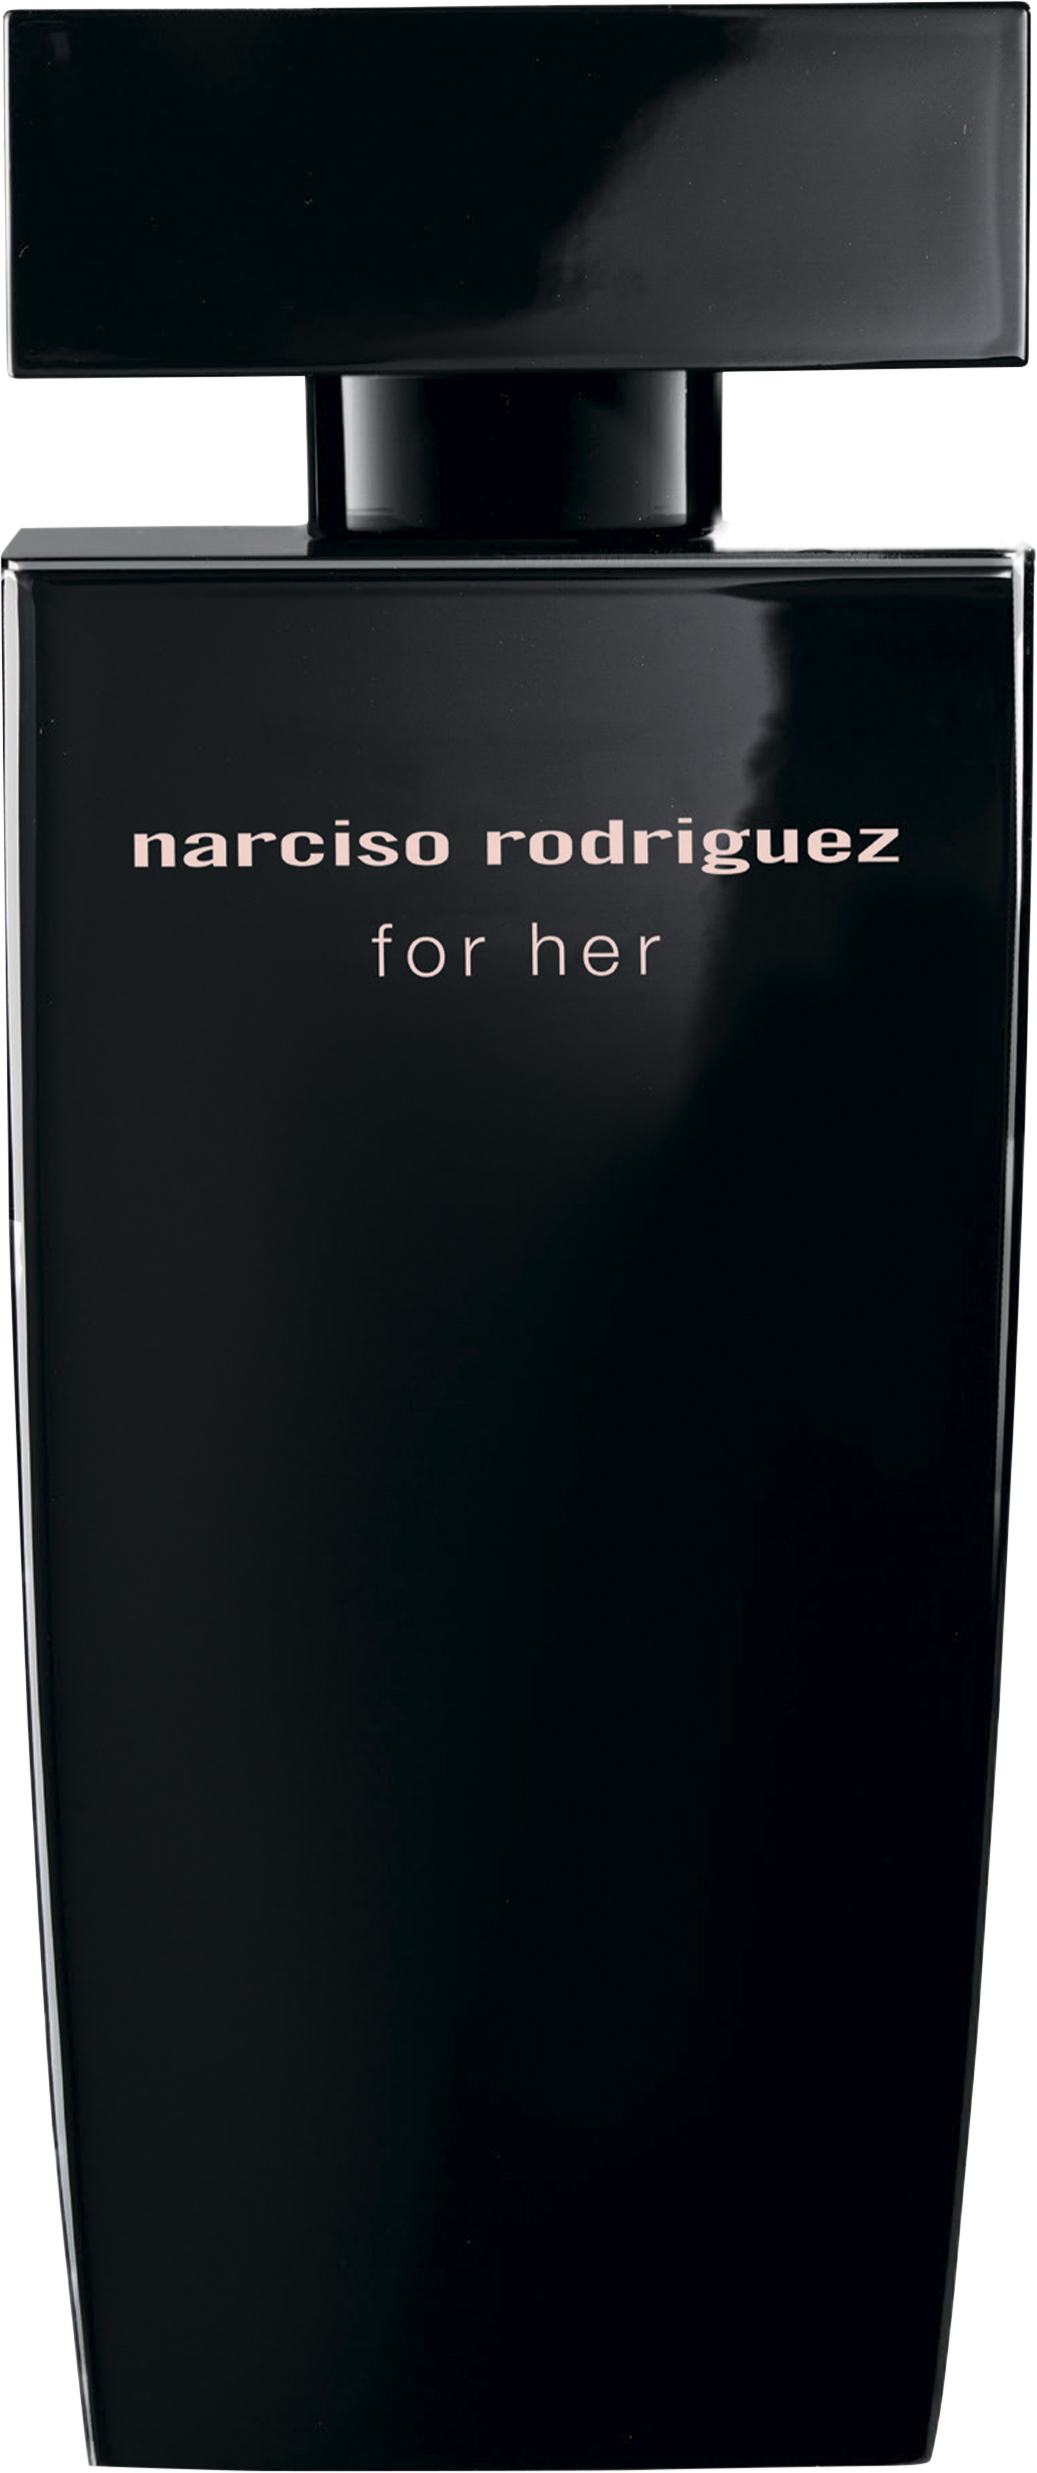 Narciso Rodriguez - For Her EDT Gracious Spray 75 ml